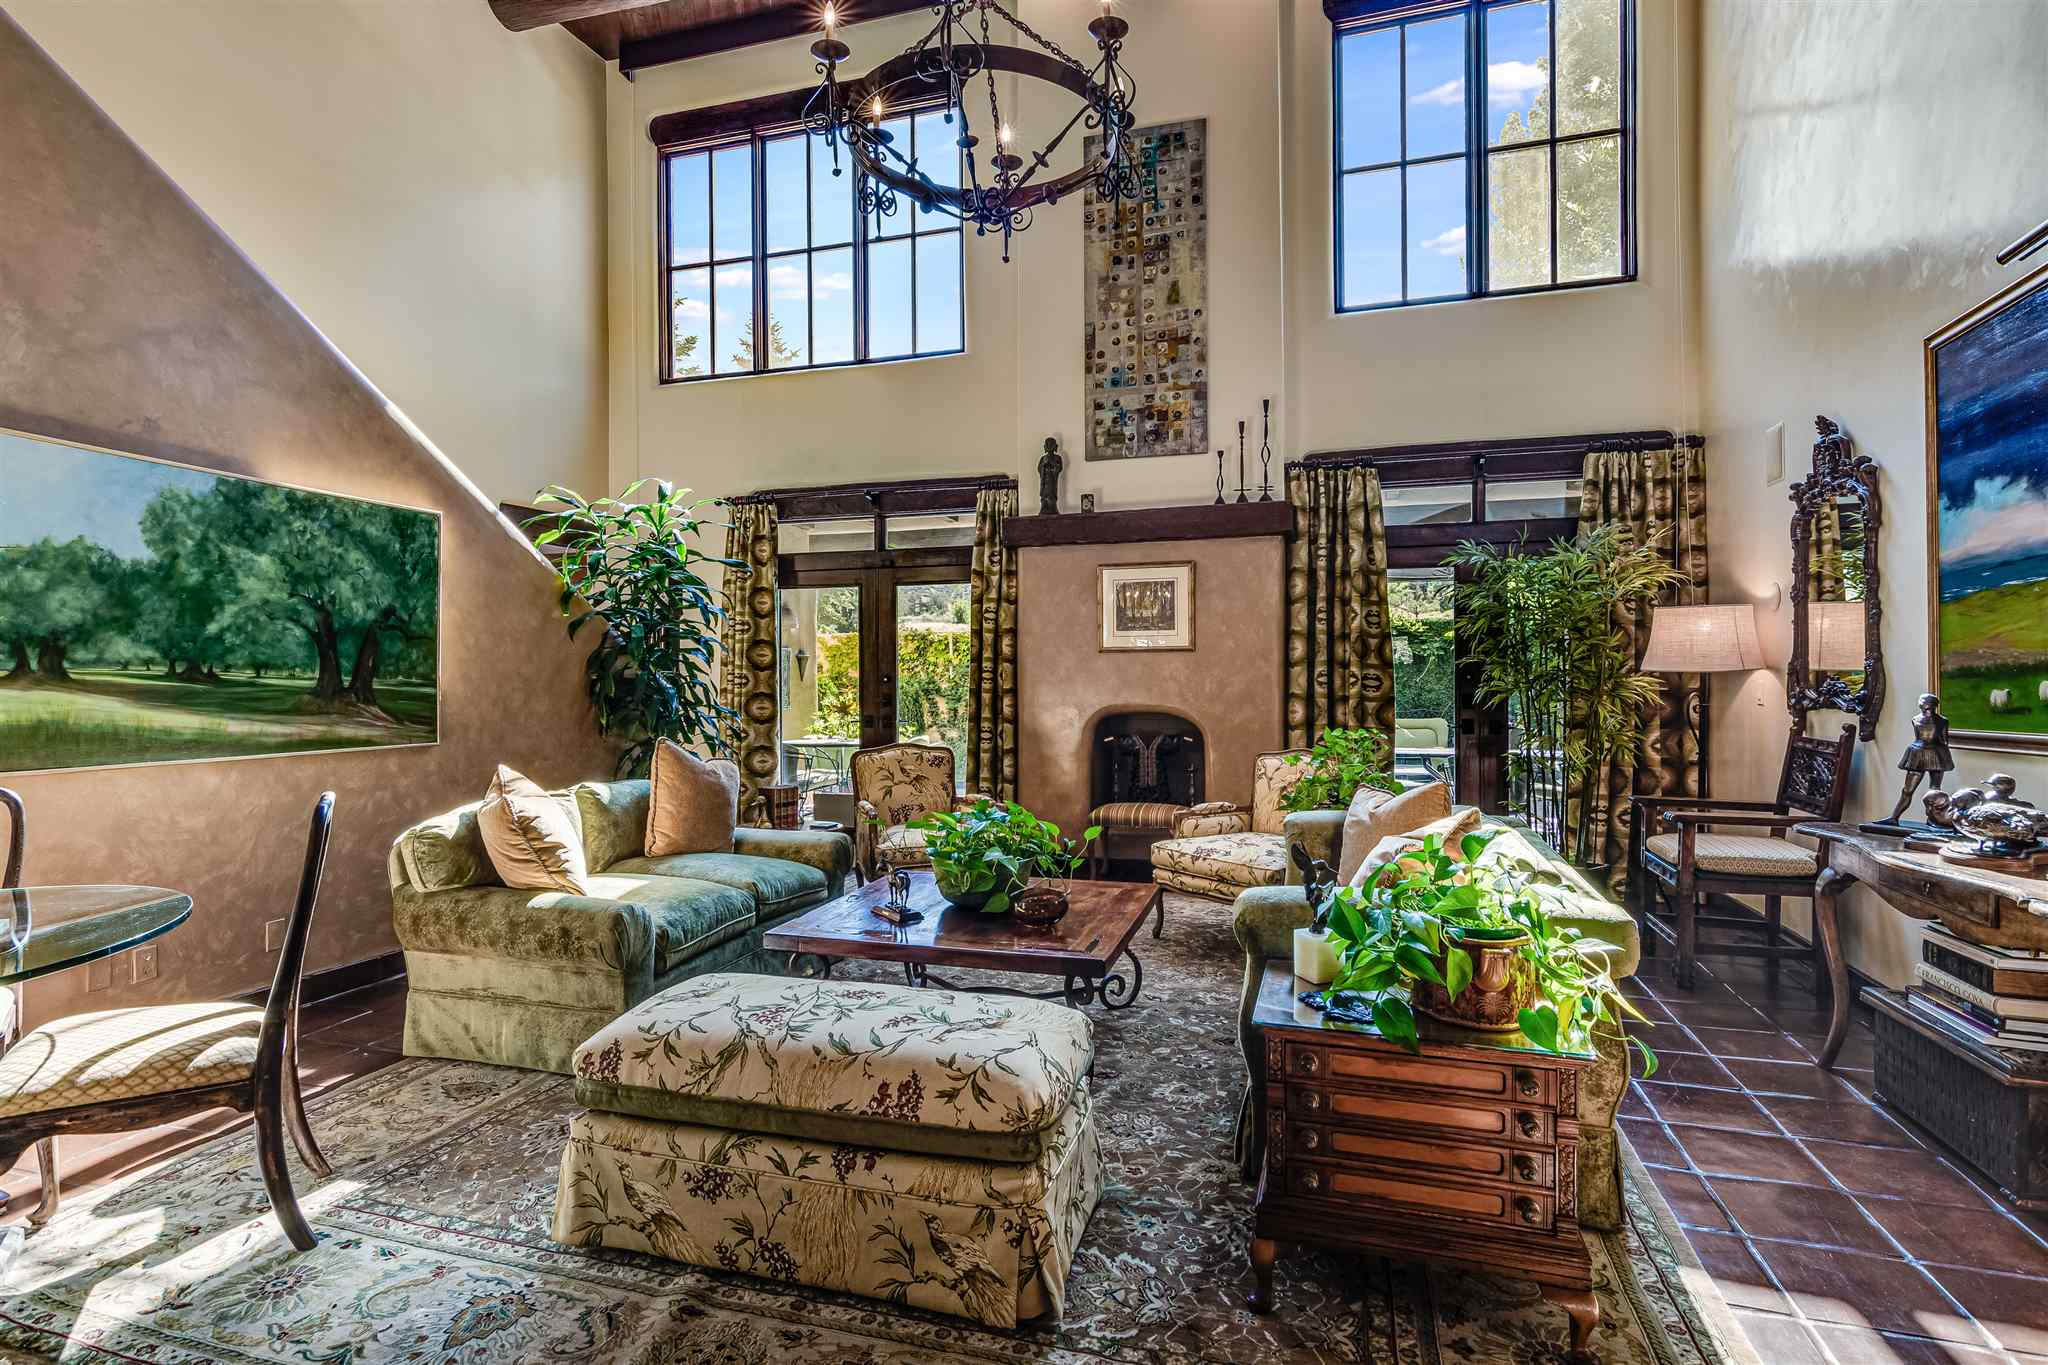 3101 Old Pecos Trail - $1,250,000